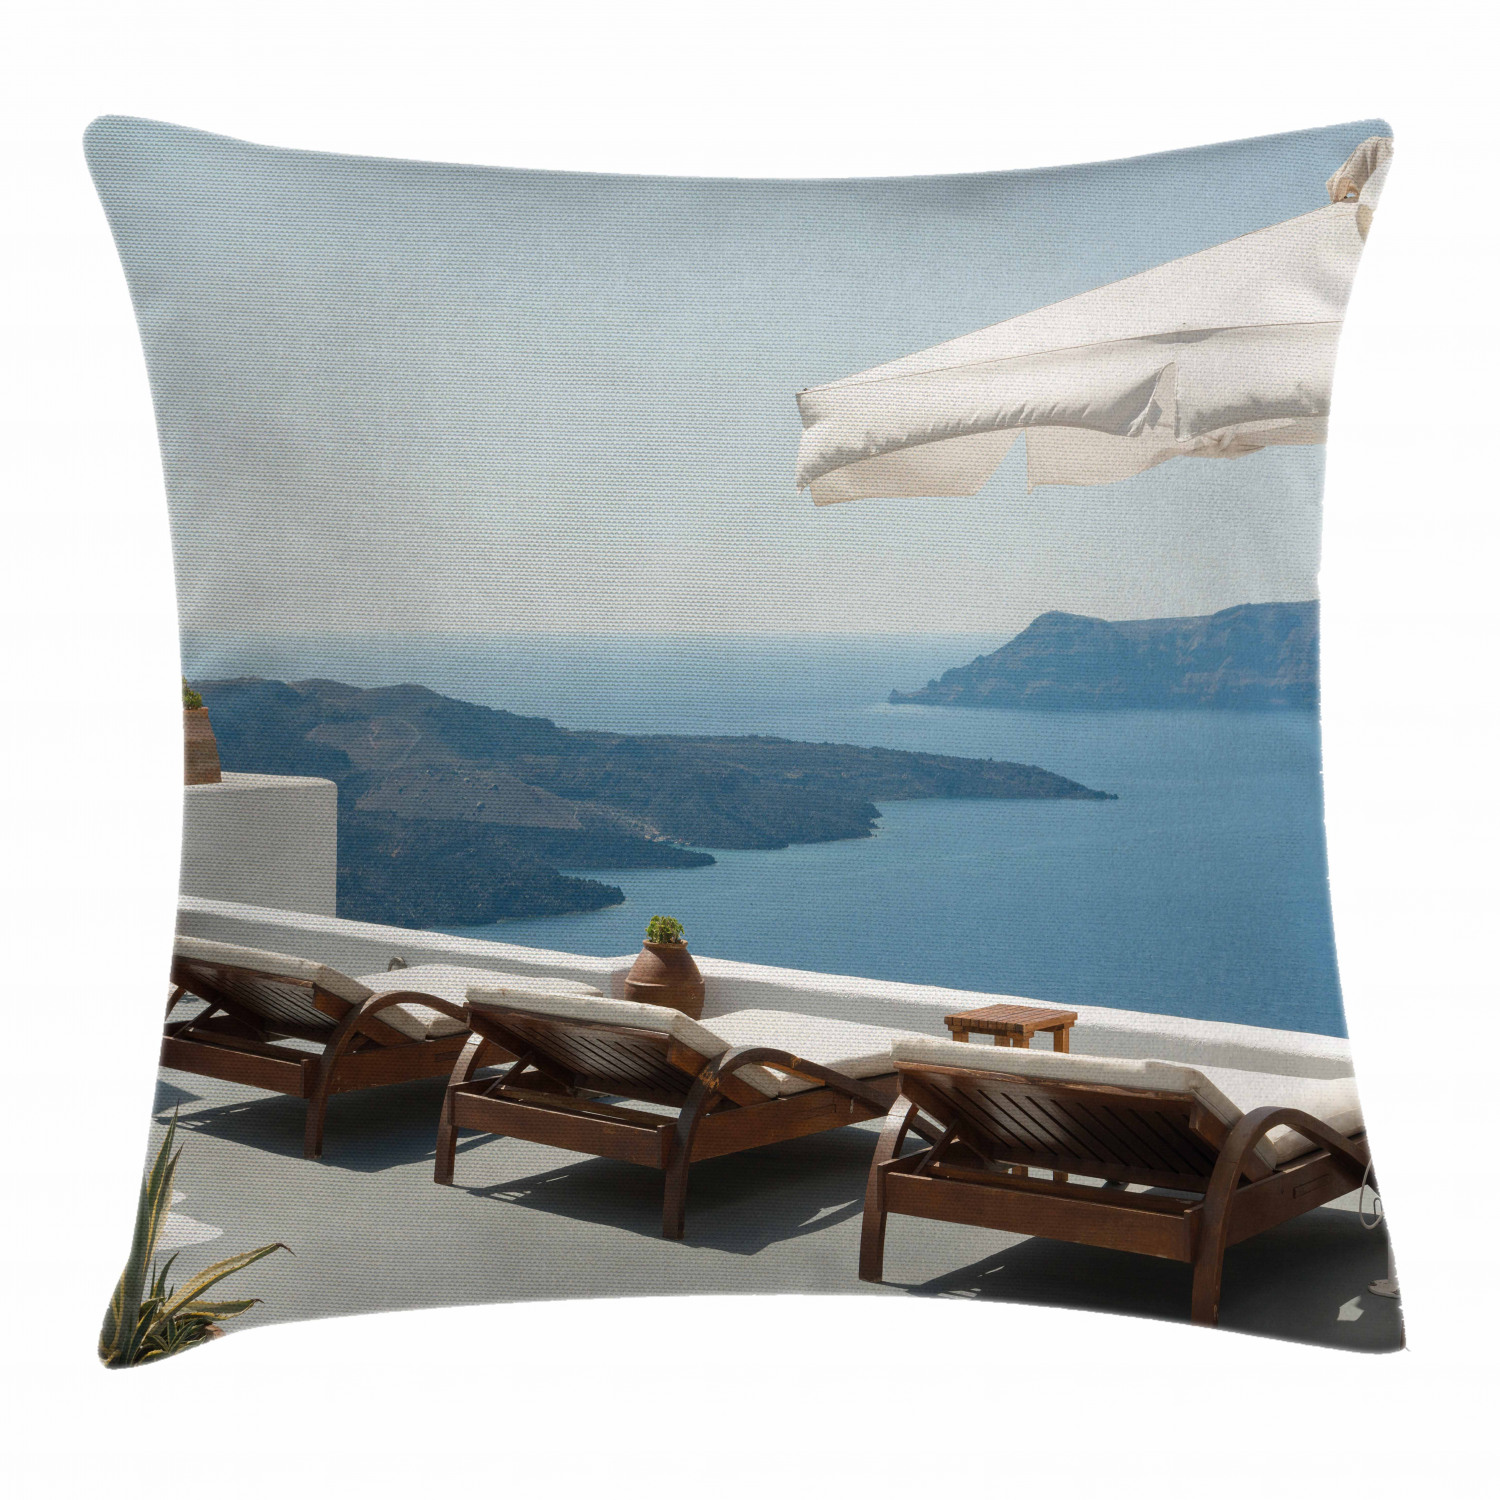 Travel Decor Throw Pillow Cushion Cover Sunbathing With Caldera View Terrace Santorini Aegean Greece Print Decorative Square Accent Pillow Case 24 X 24 Inches Blue White And Green By Ambesonne Walmart Com